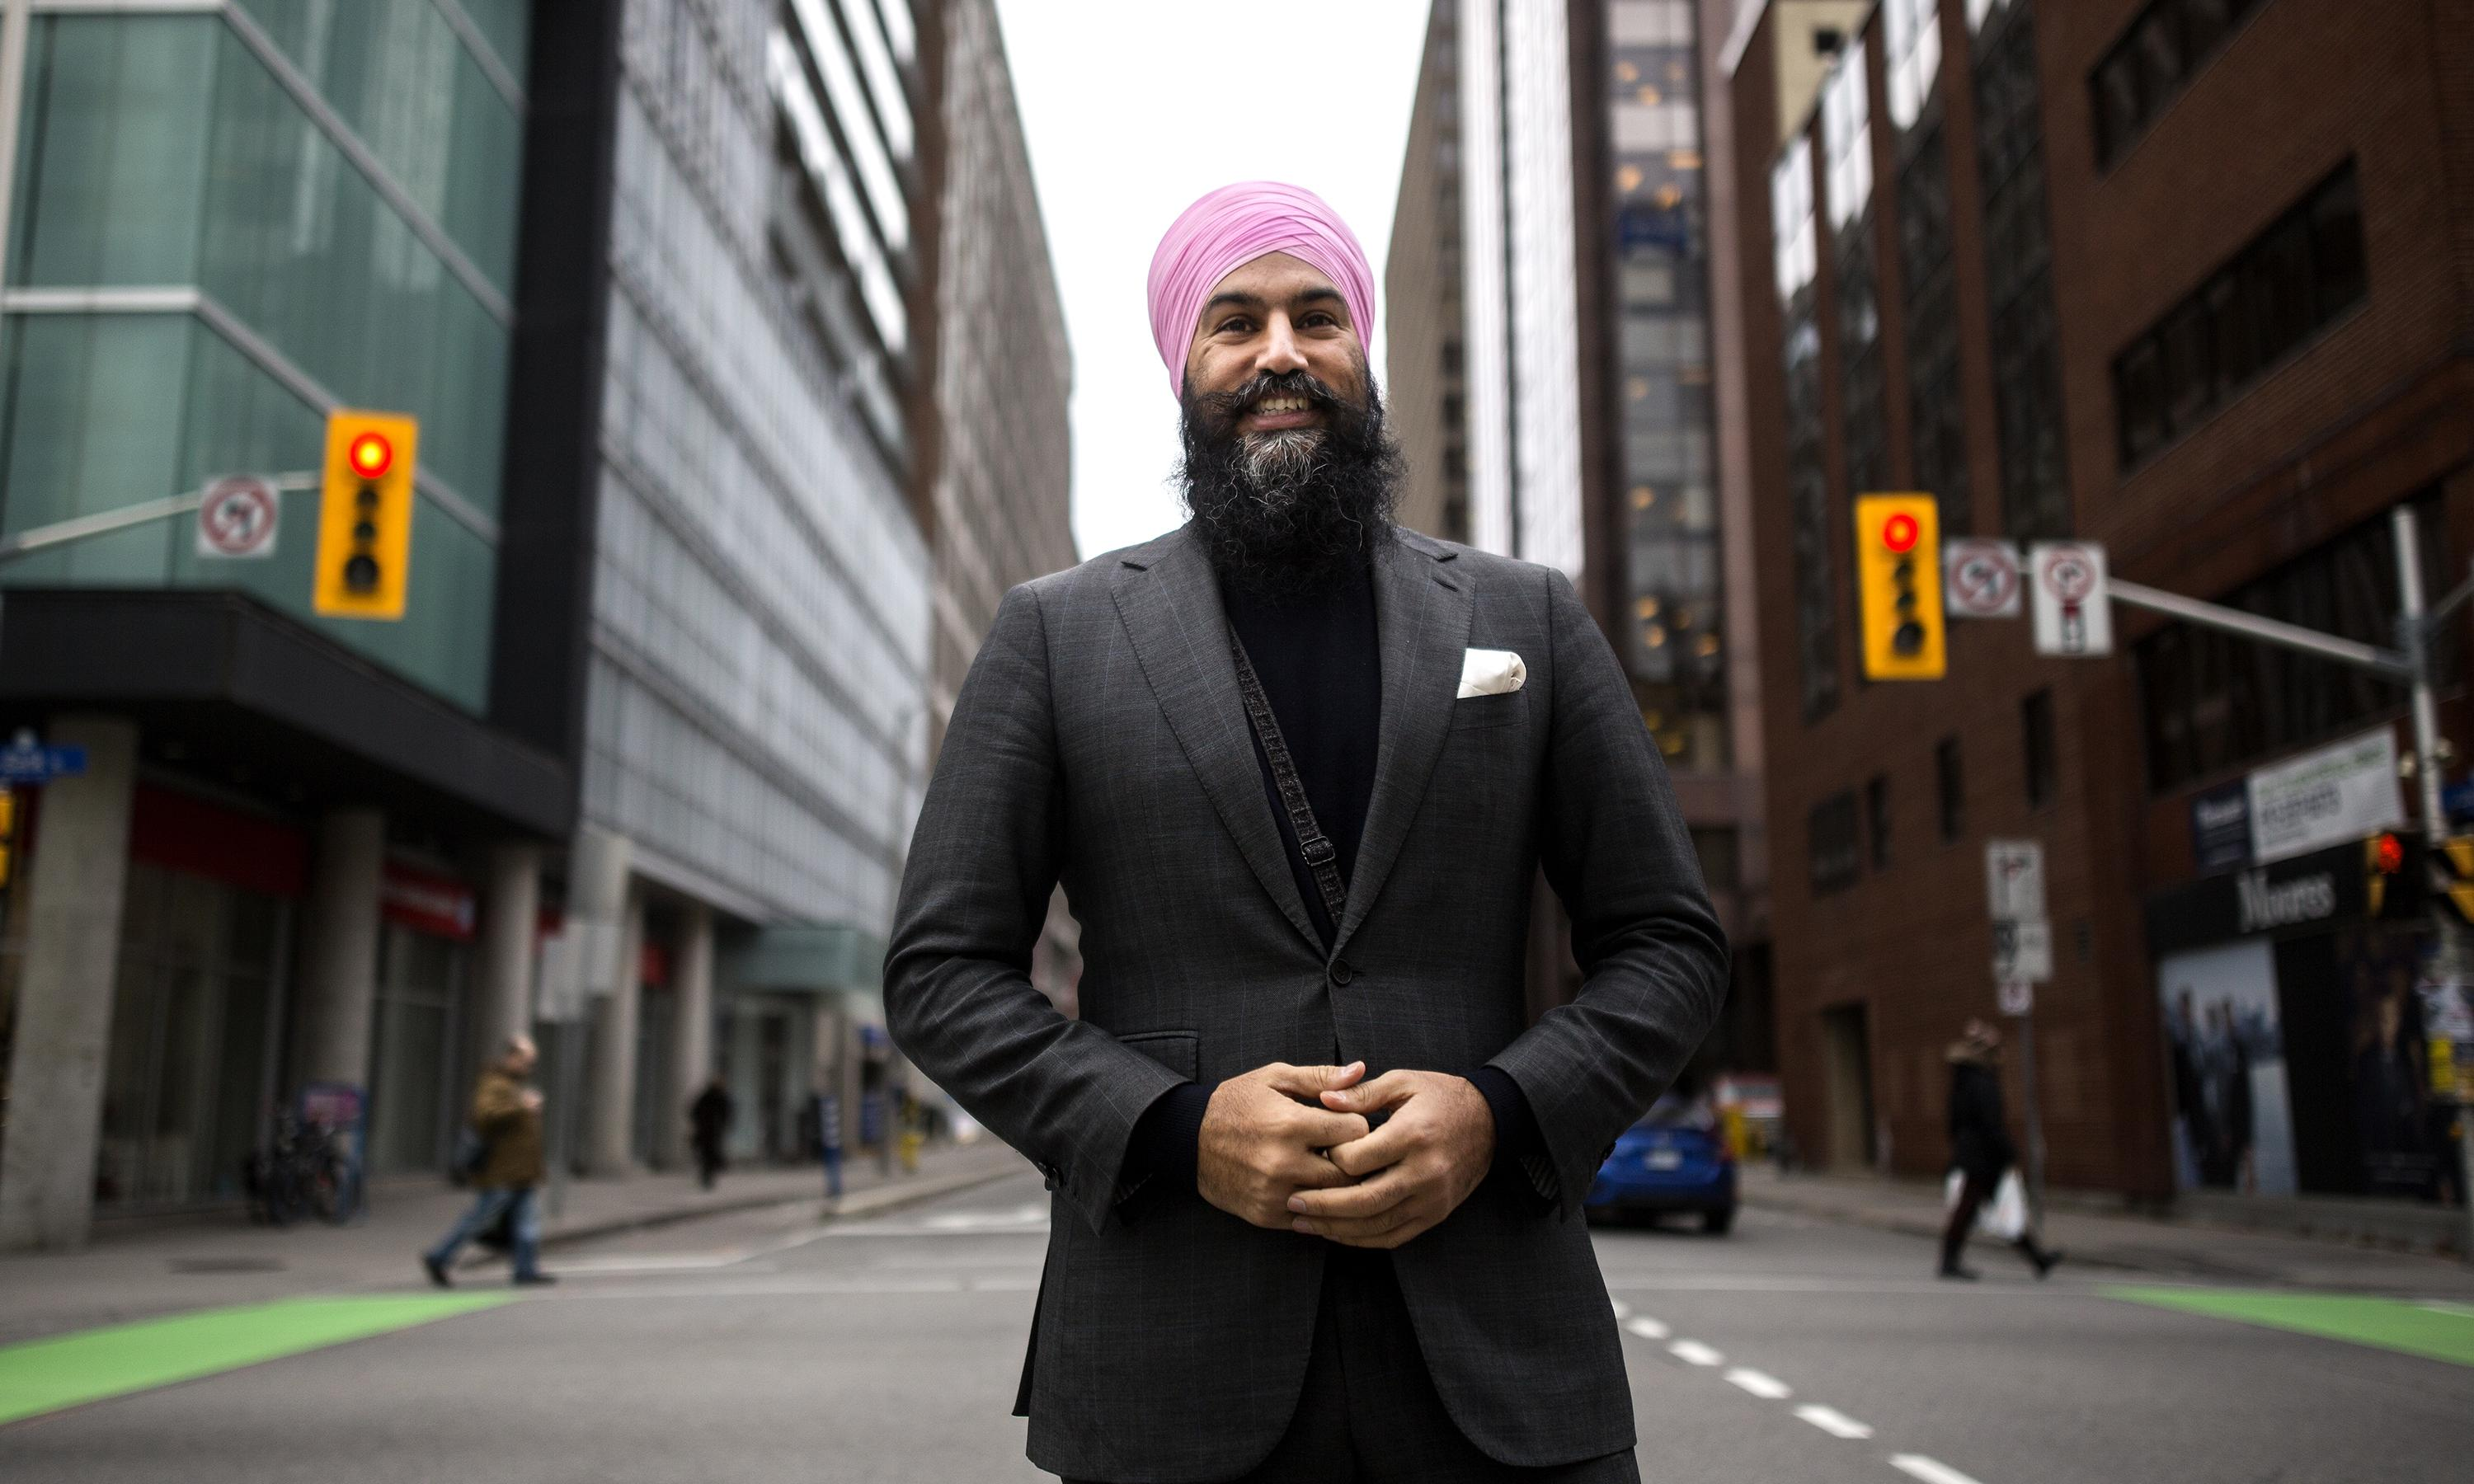 Canada: Jagmeet Singh faces existential byelection on road to challenge Trudeau